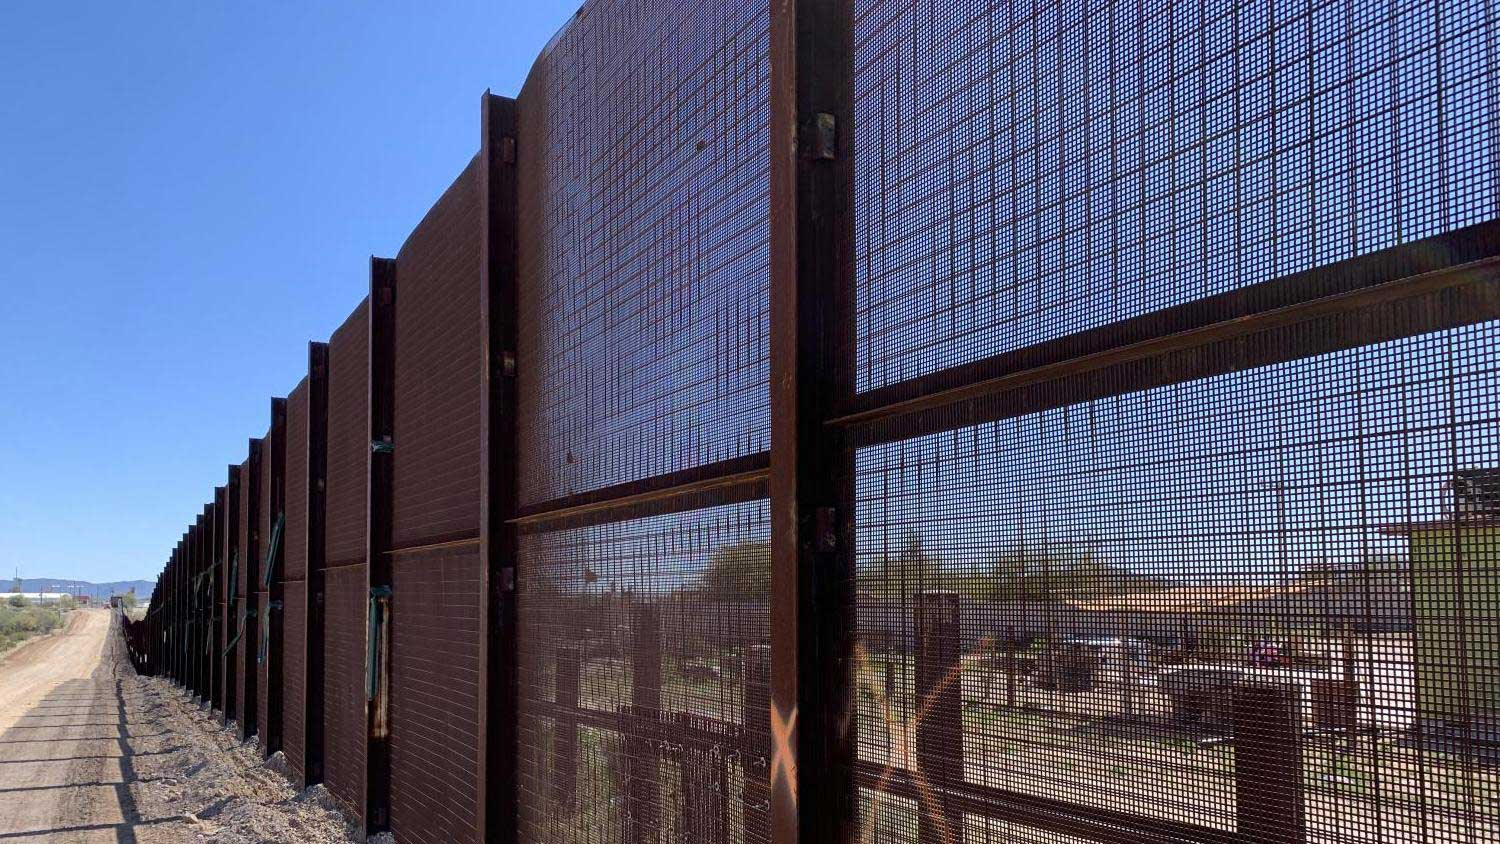 This border screen system installed in Organ Pipe Cactus National Monument was being replaced in 2020 with a 30-foot-high bollard border wall because Border Patrol officials said it was being cut through. Now the new border wall is also being breached.